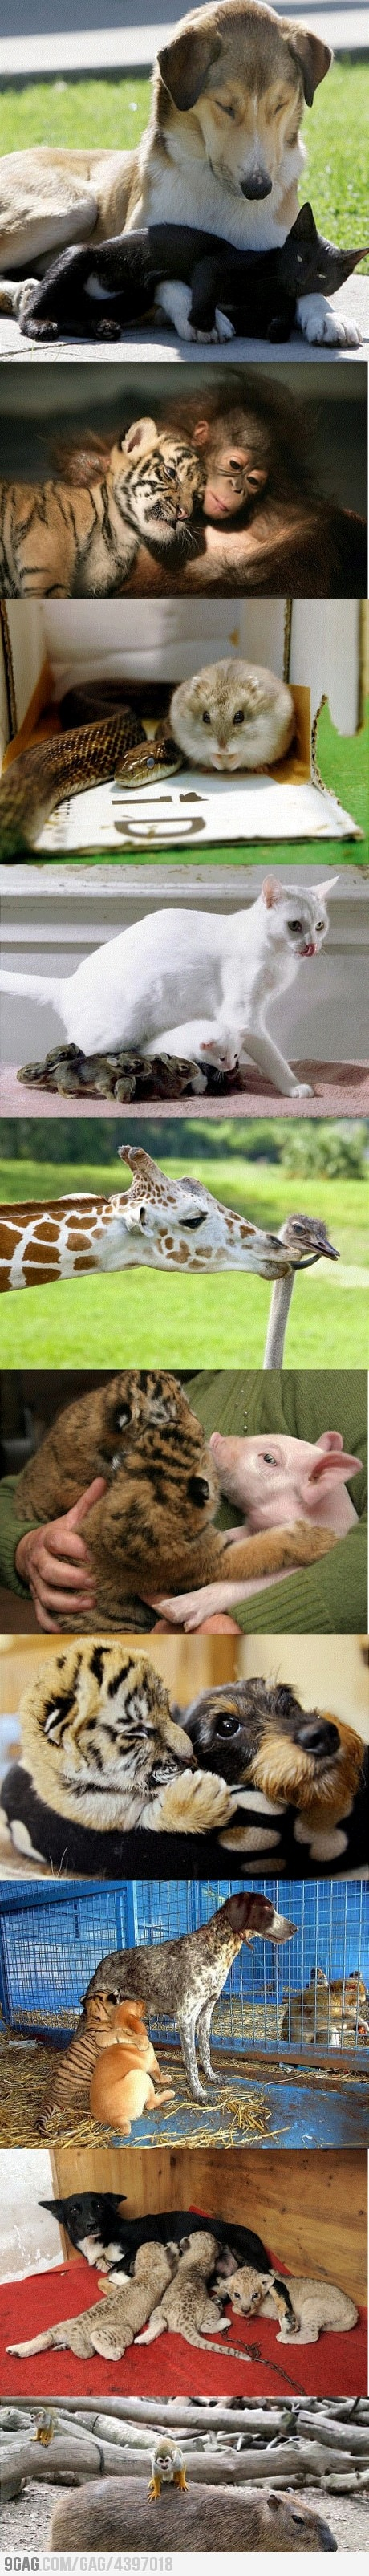 Unexpected Friendships